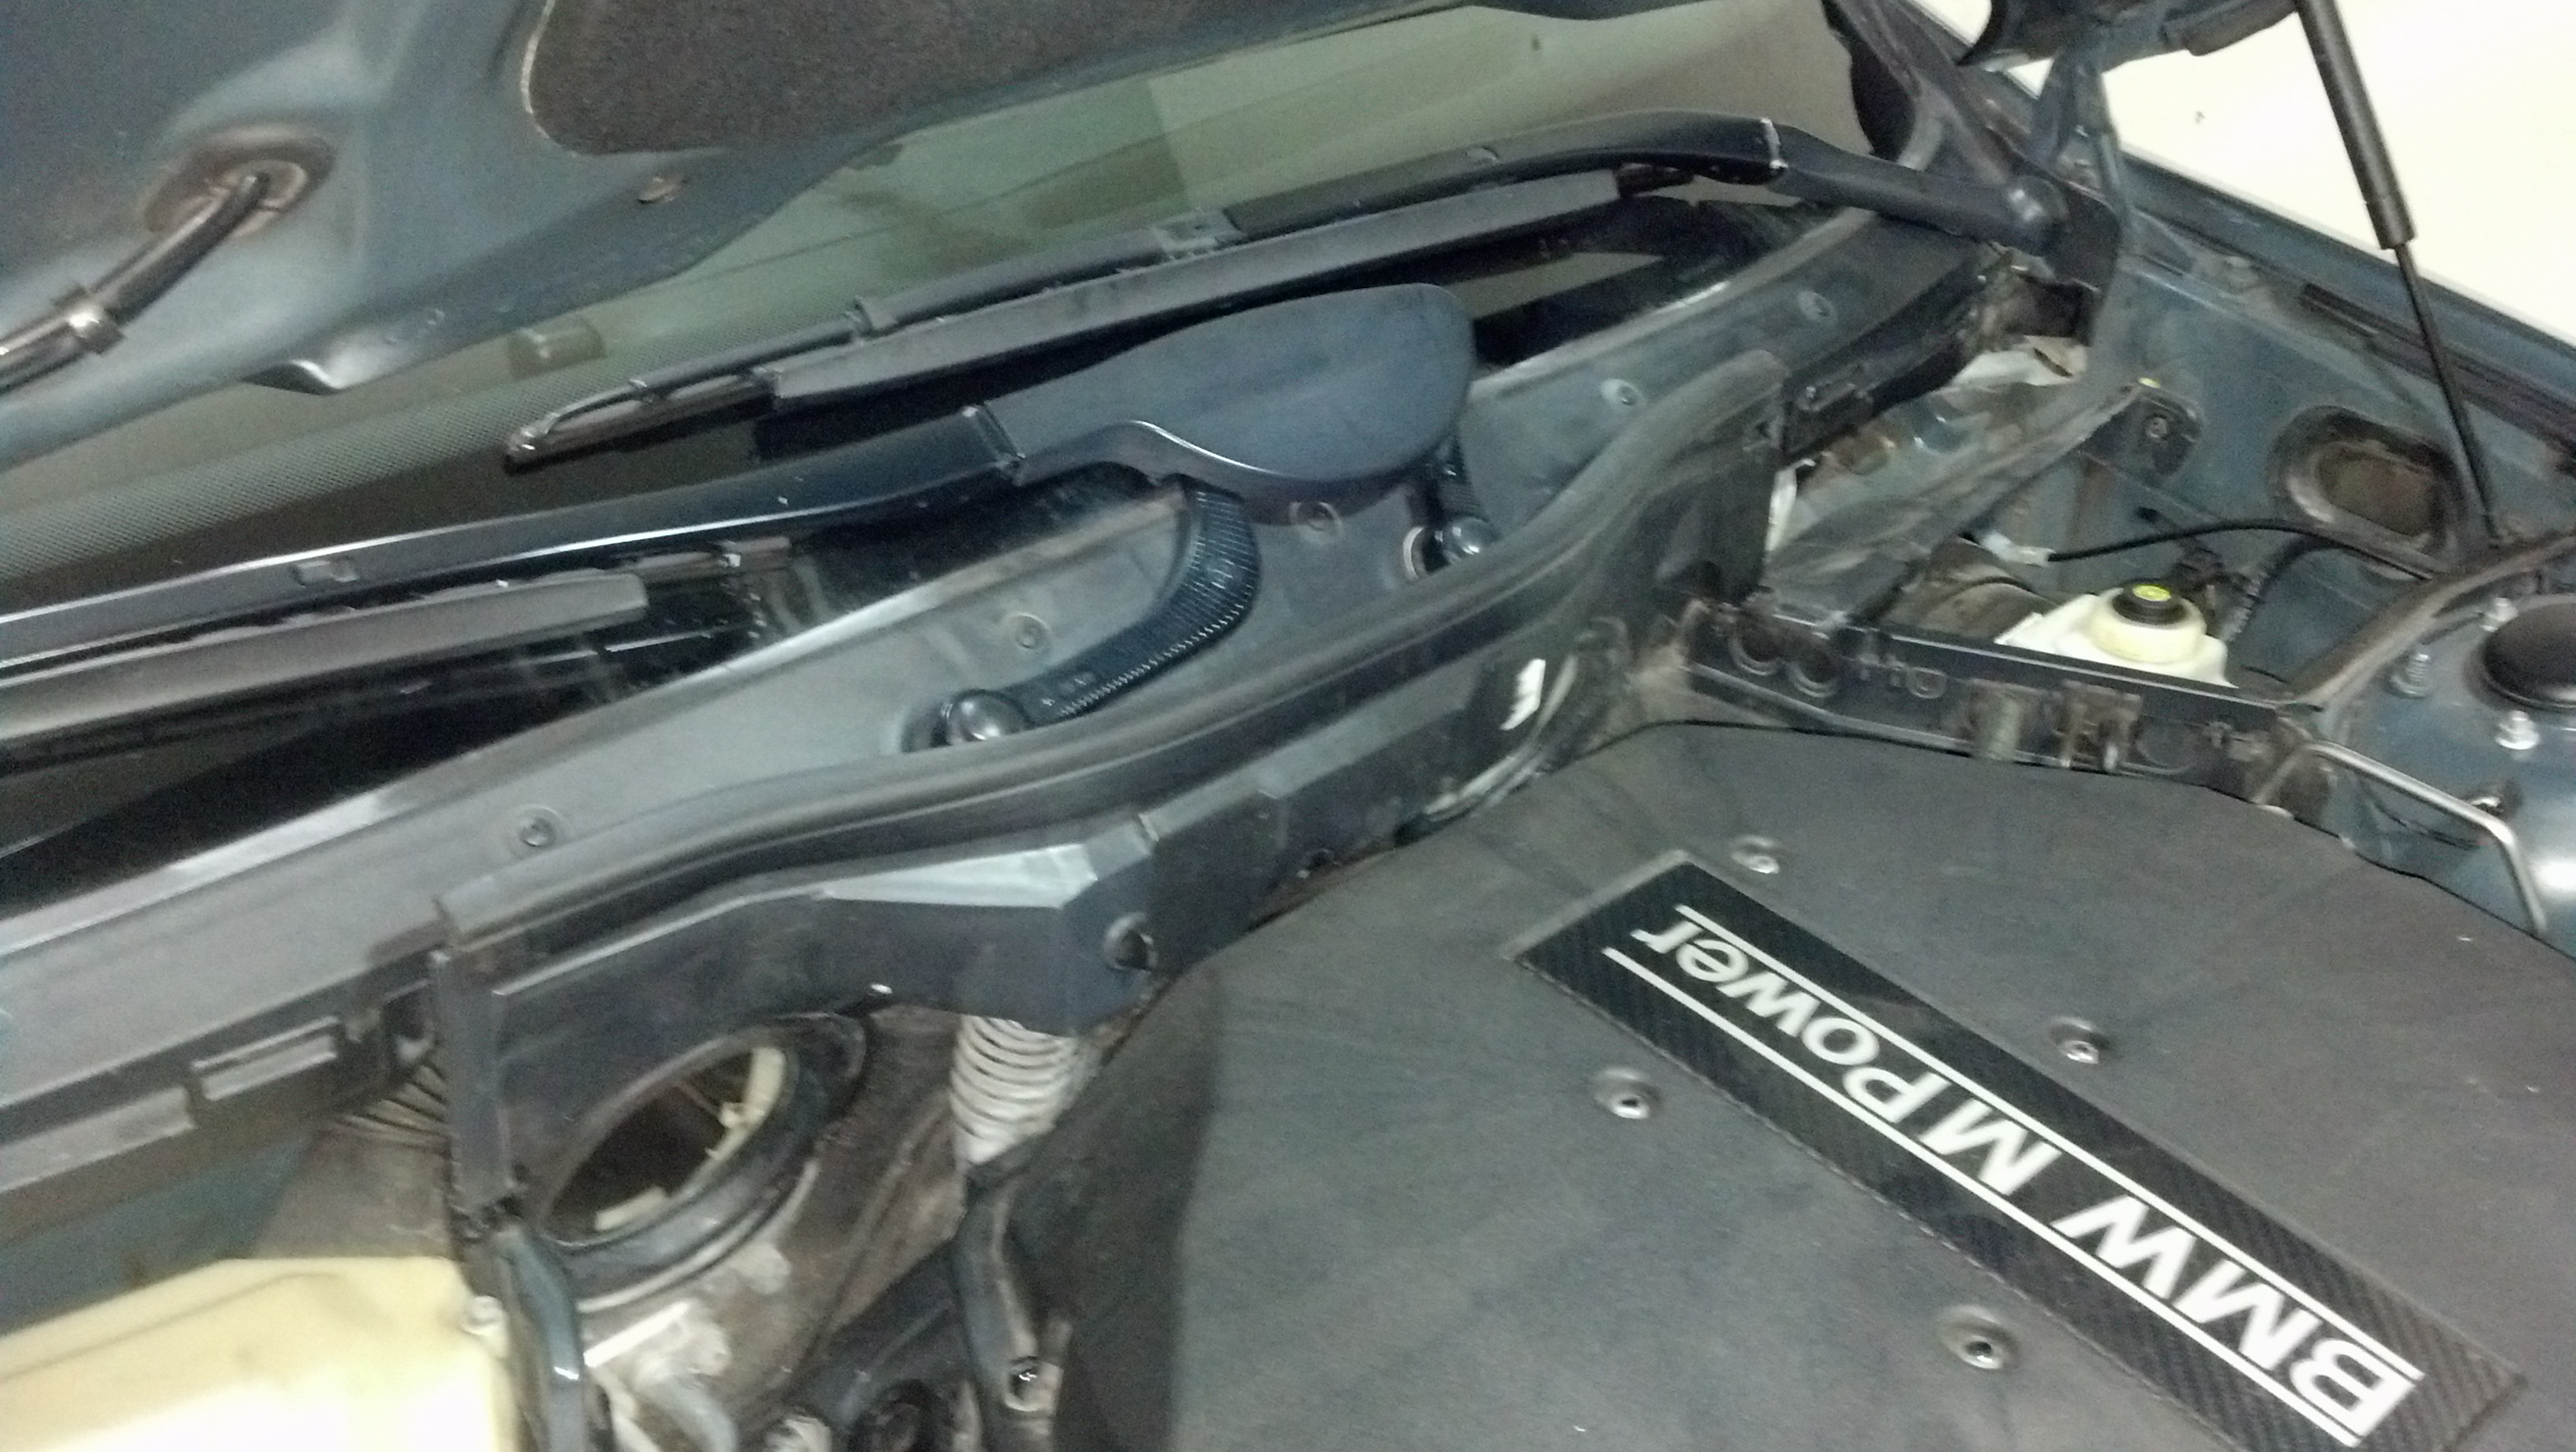 E39 - Replacement of the Left and Right Firewall Covers-img_20131130_195158_840.jpg